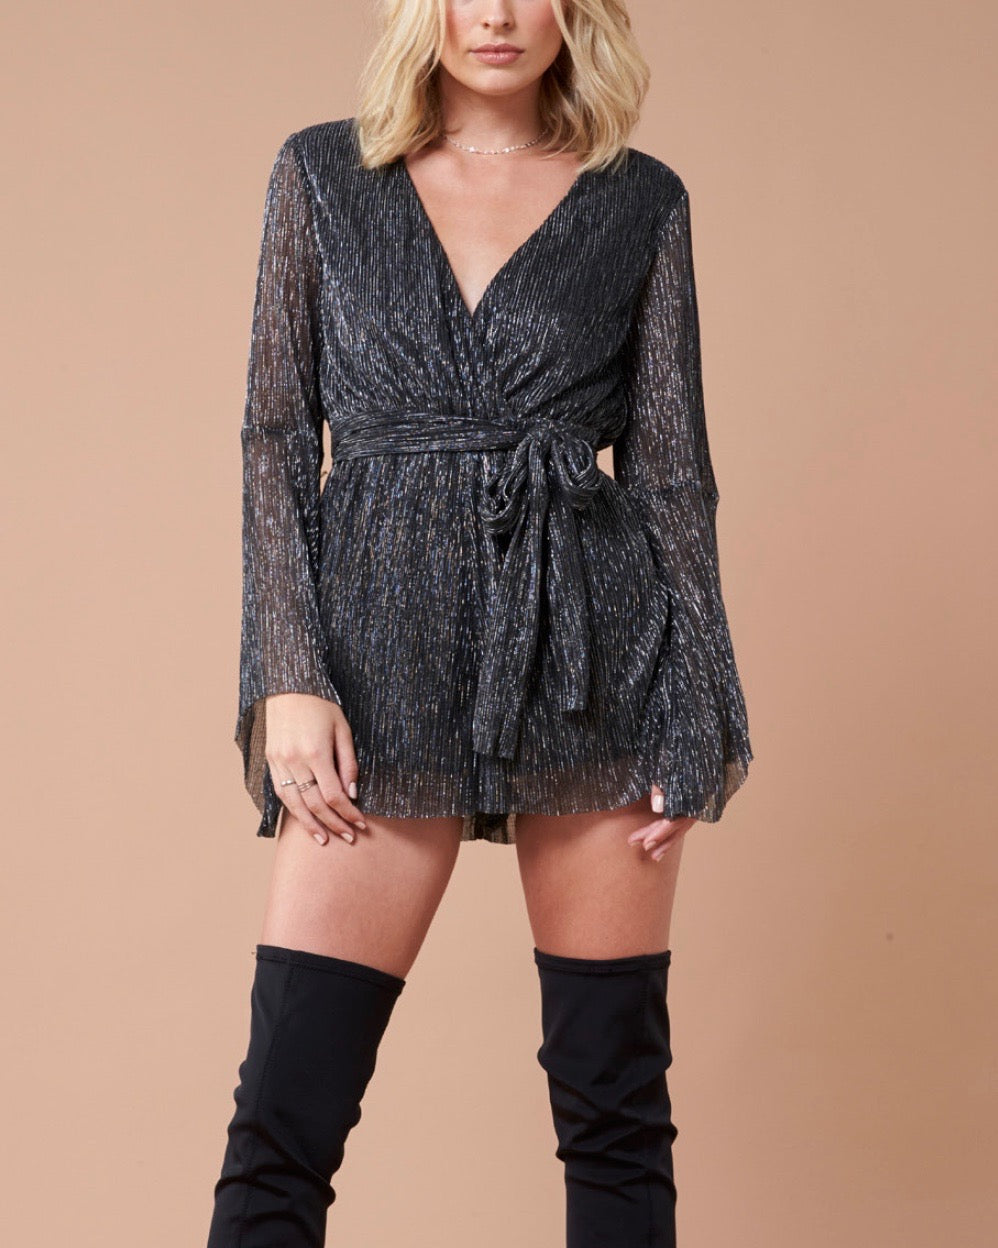 Final Sale - MINKPINK - Women's Glistening Pleat Playsuit - Black